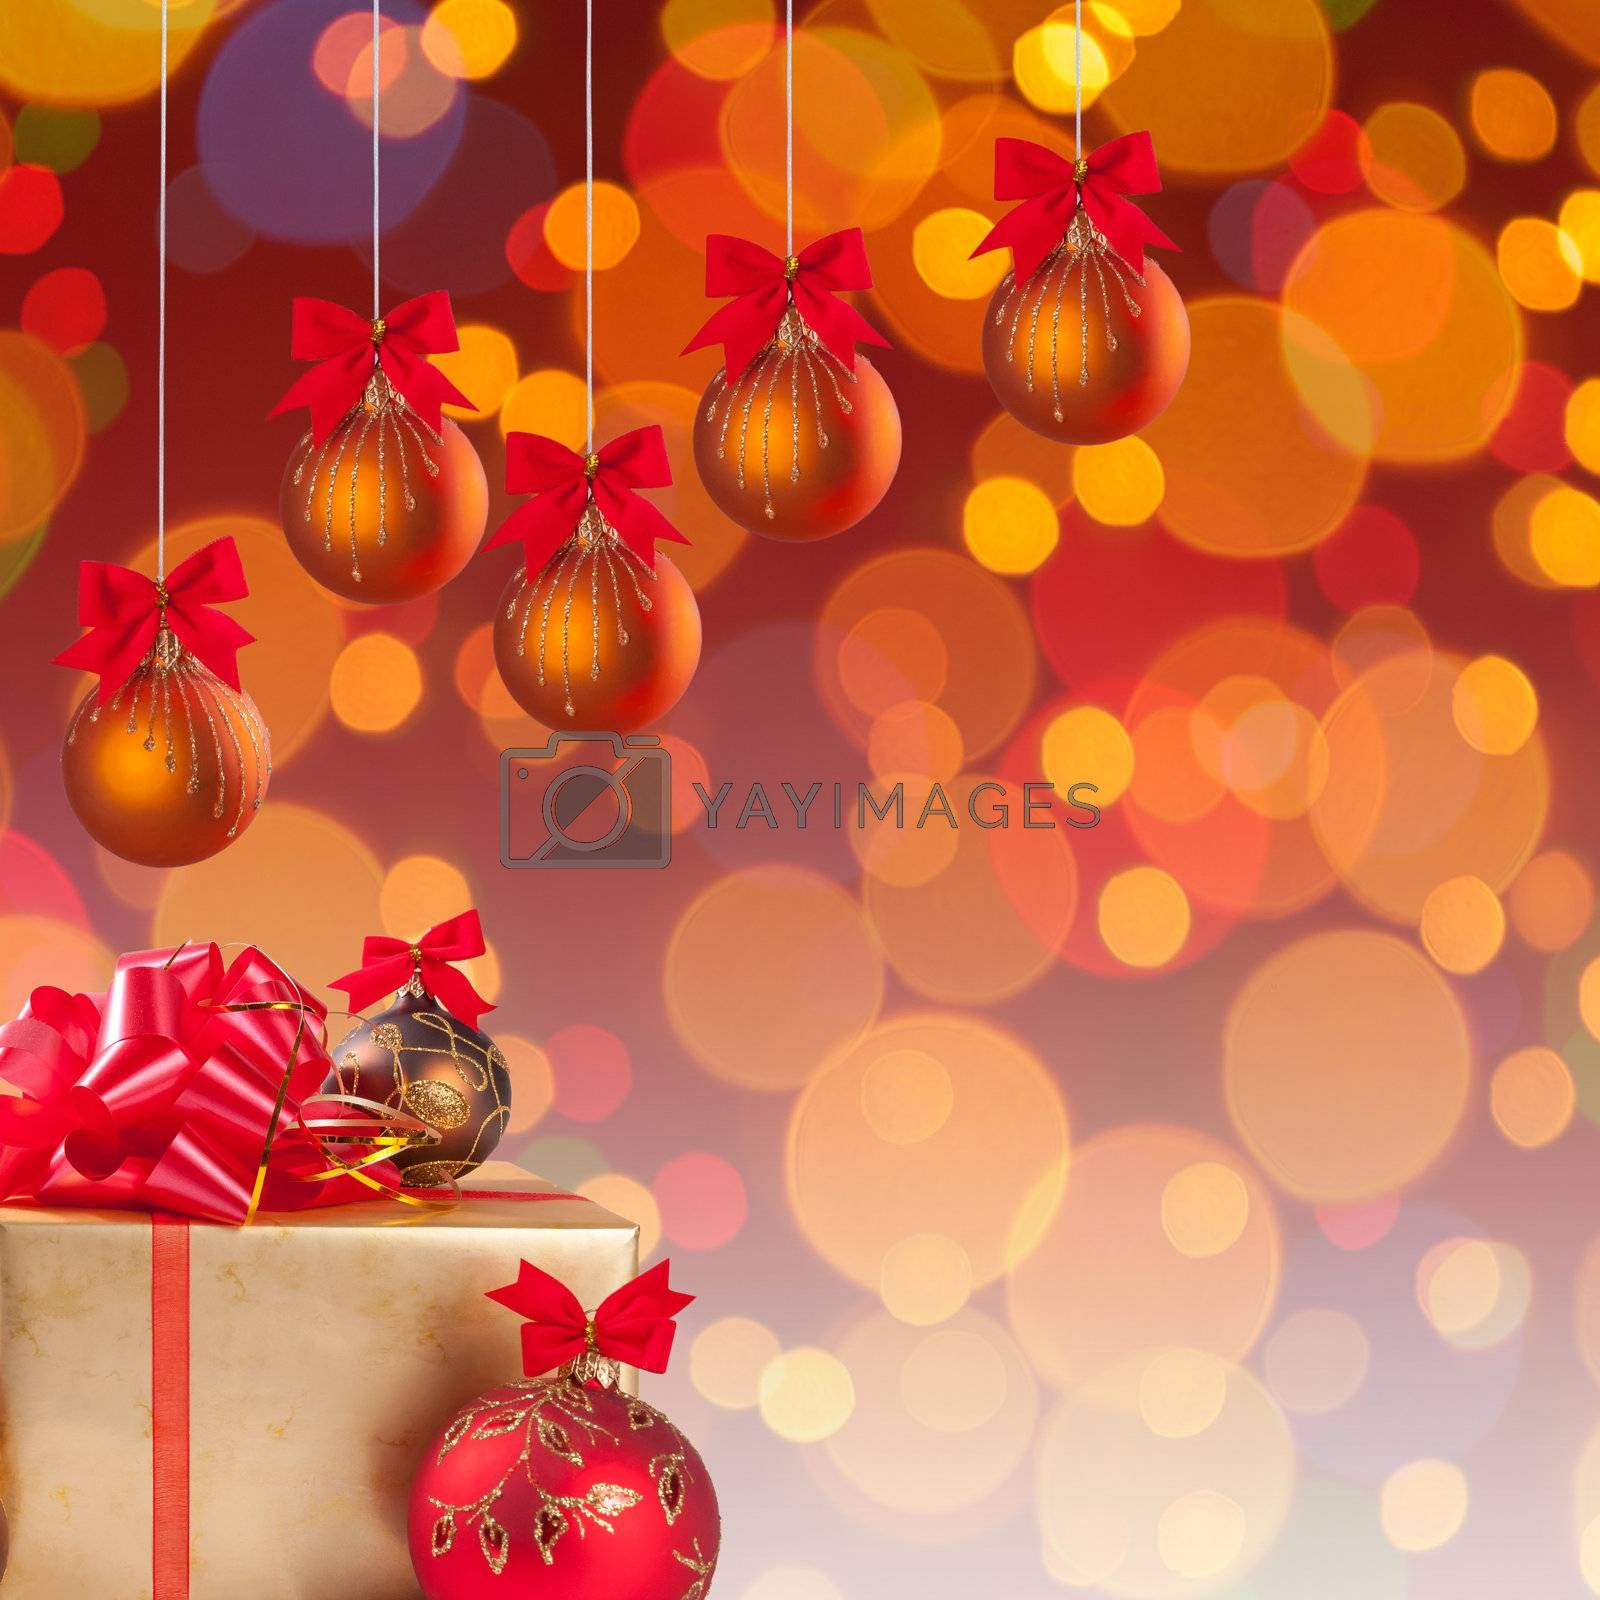 Cristmas gifts and  balls on ribbon on festive background